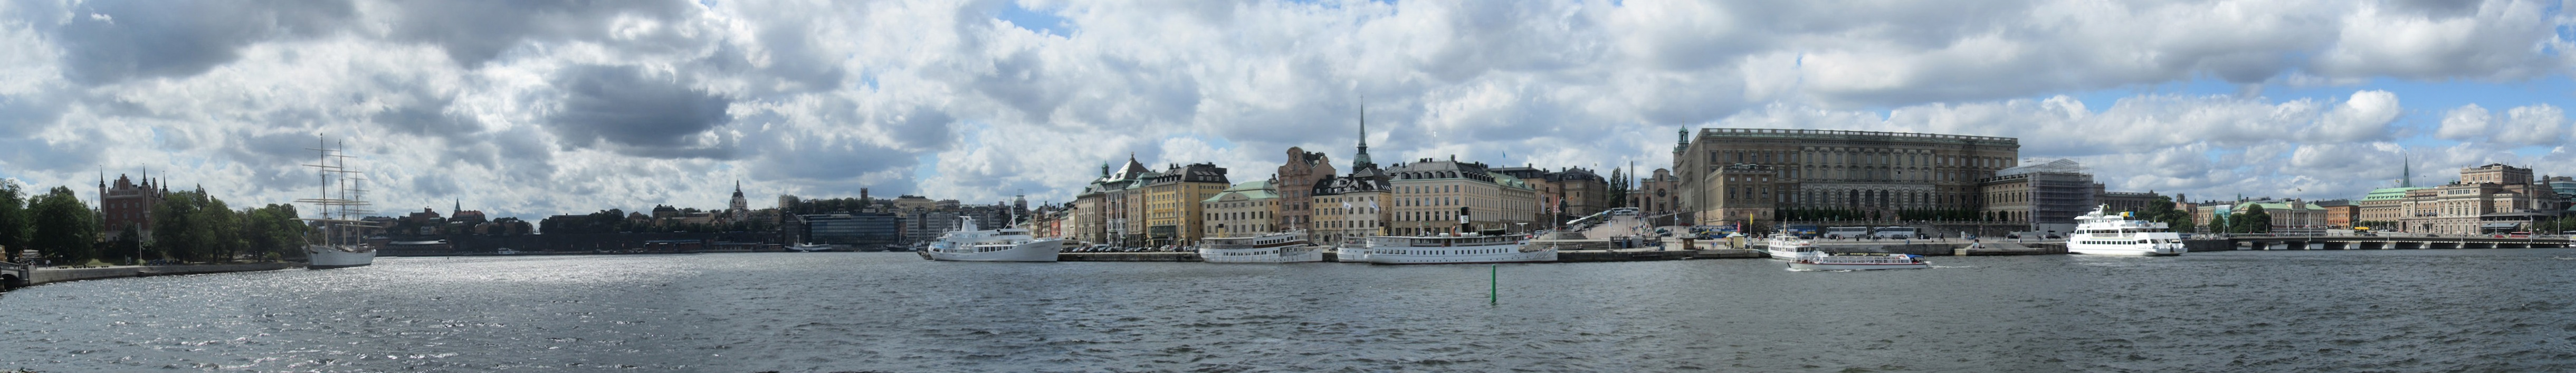 pano: Stockholm harbor from Norrmalm